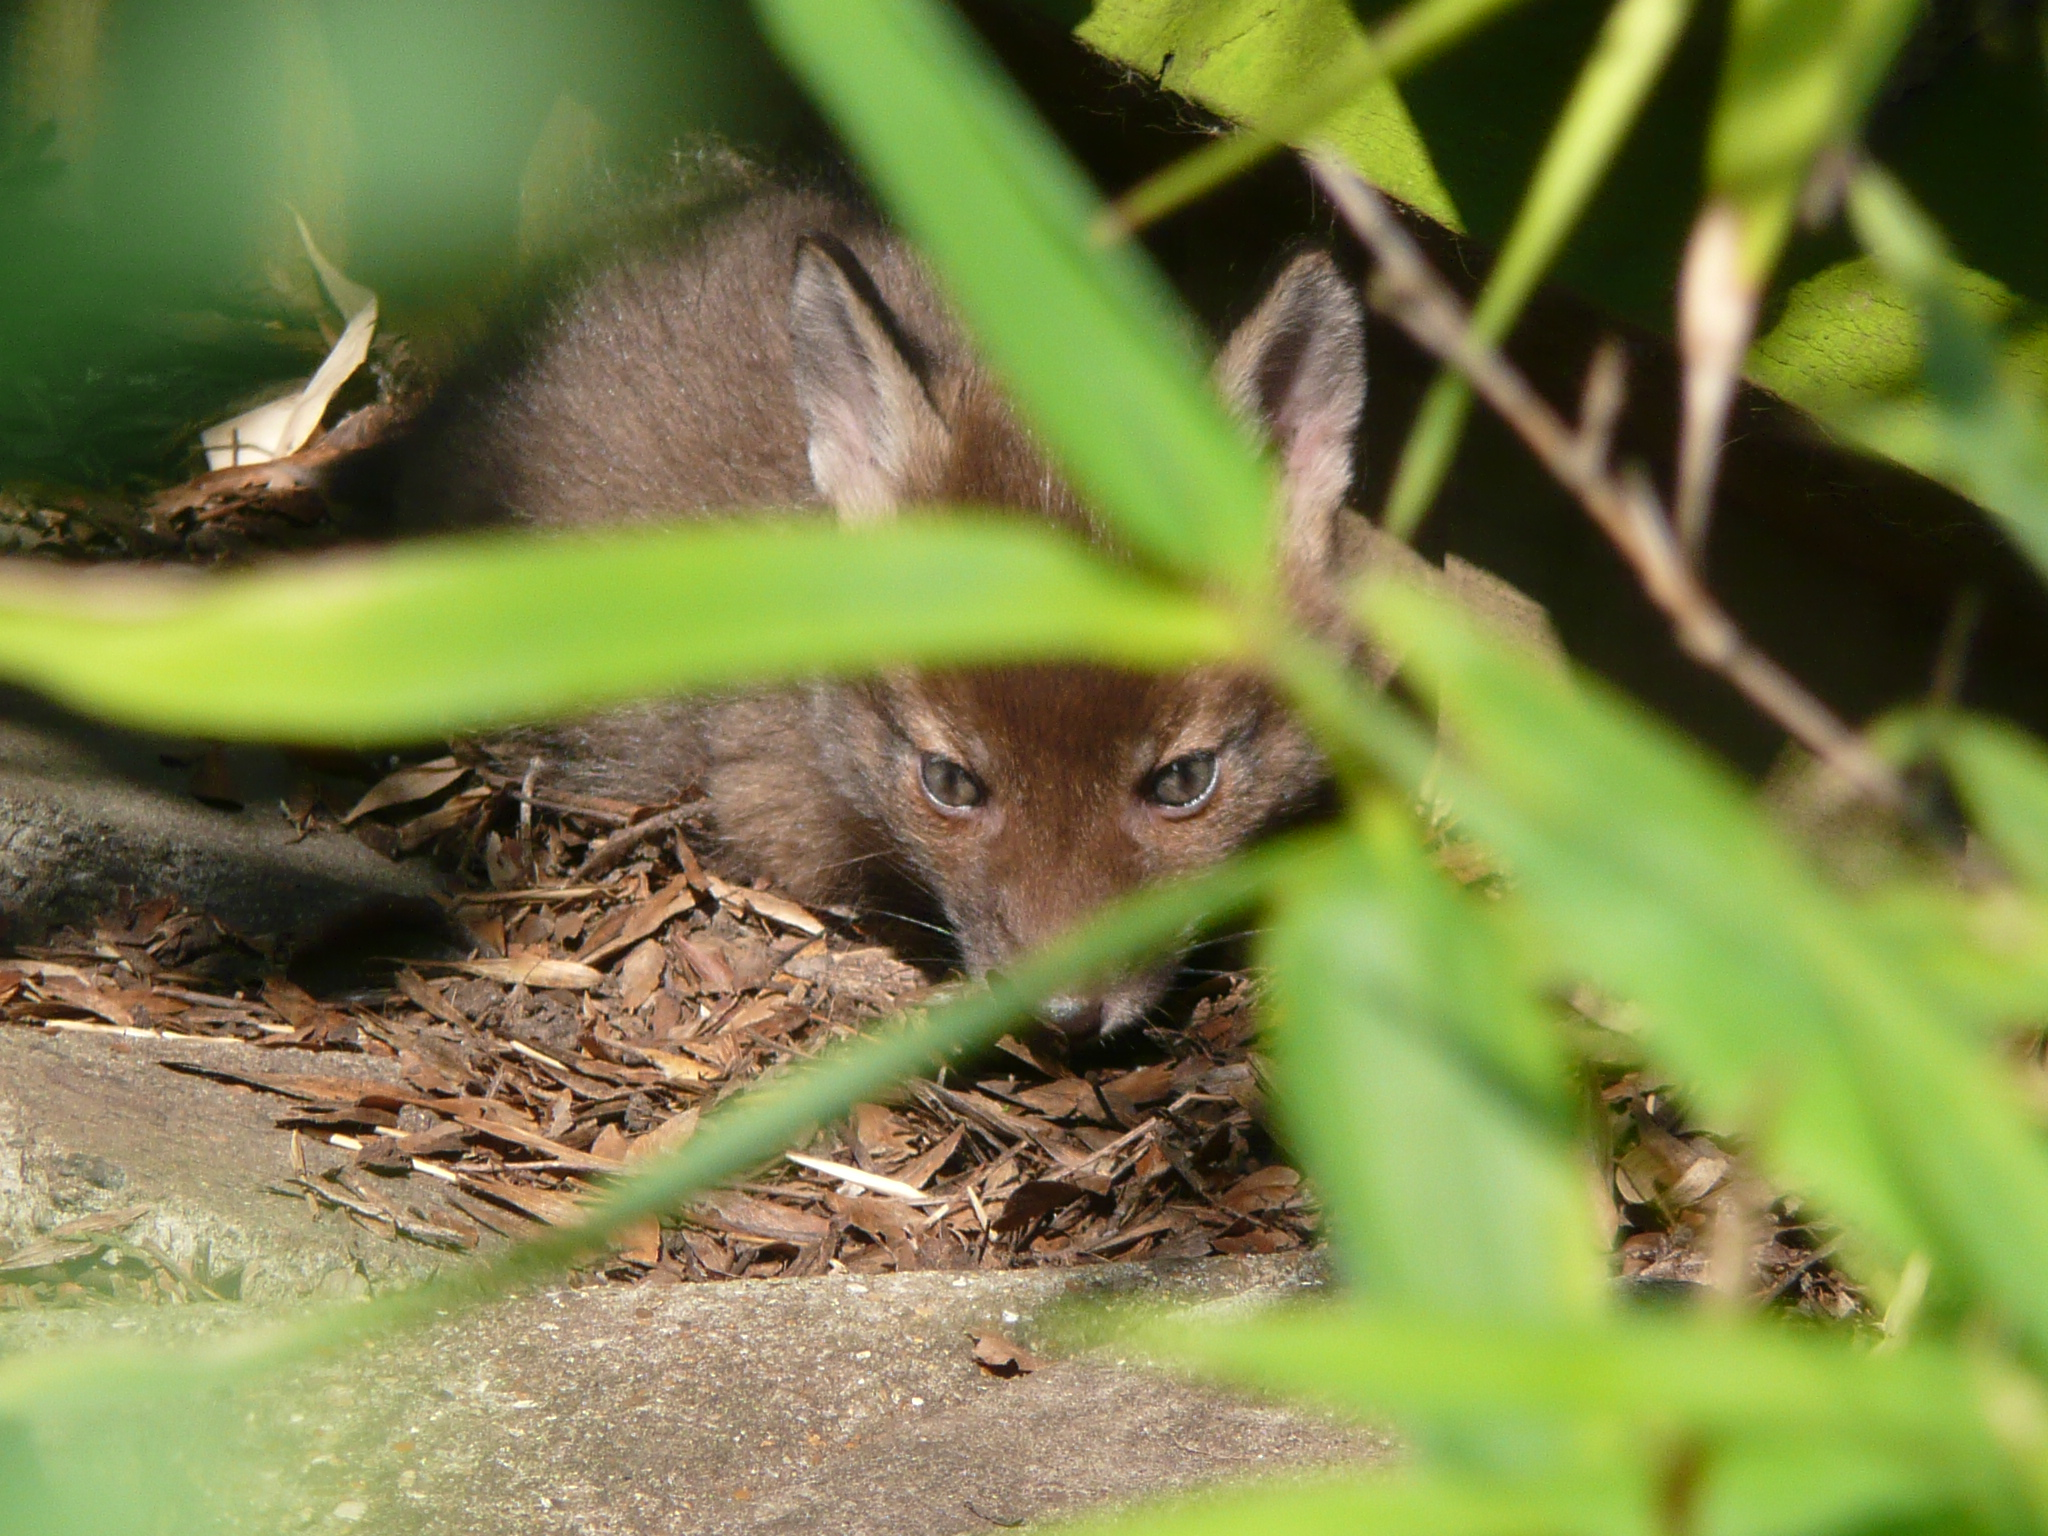 Close-up of small fox cub hiding under a plant